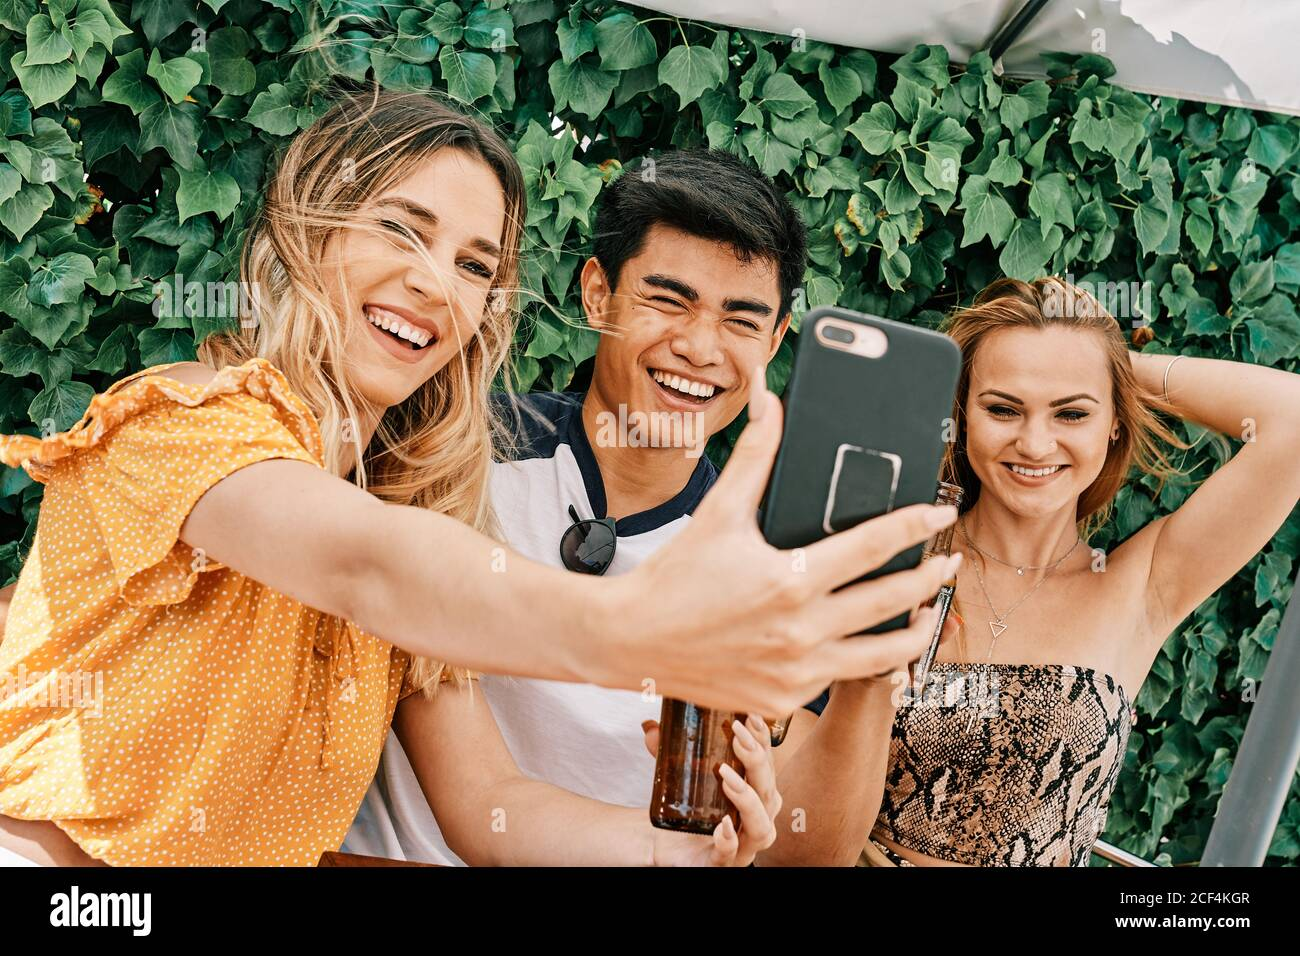 two women and a man drinking beer and taking selfies Stock Photo